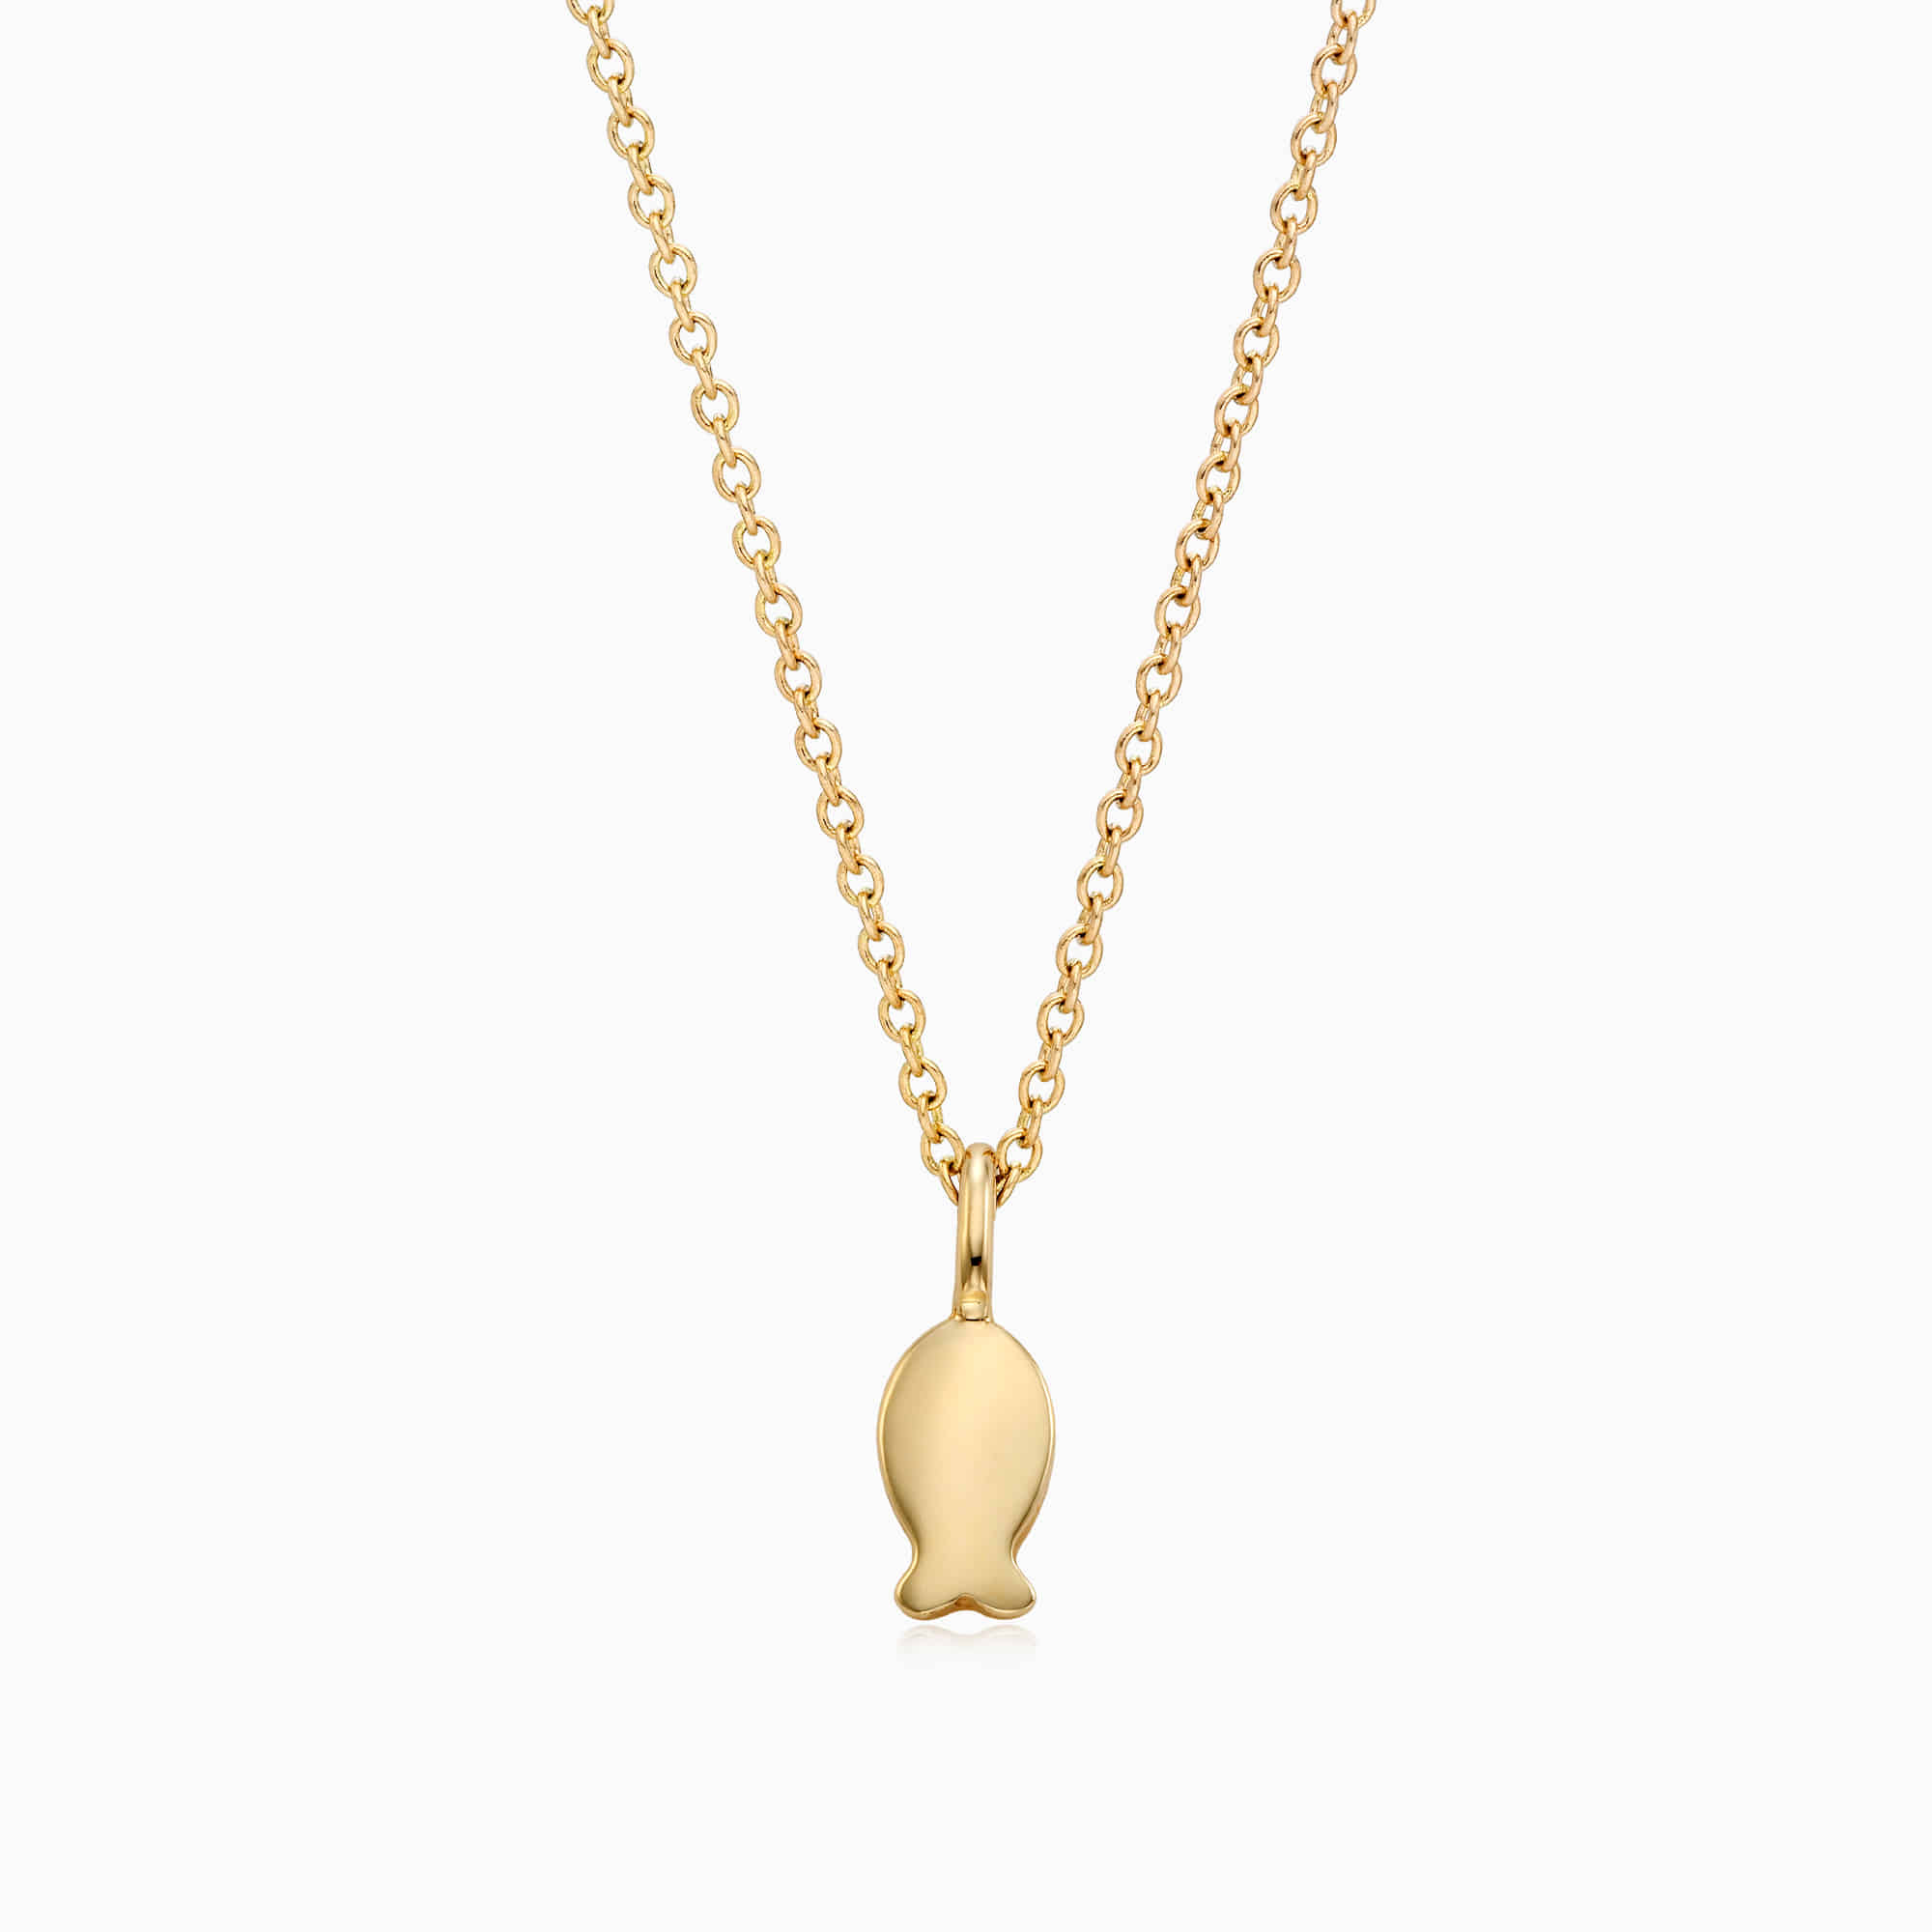 14K/18K Gold Kaiu Hope Necklace- Carp Necklace